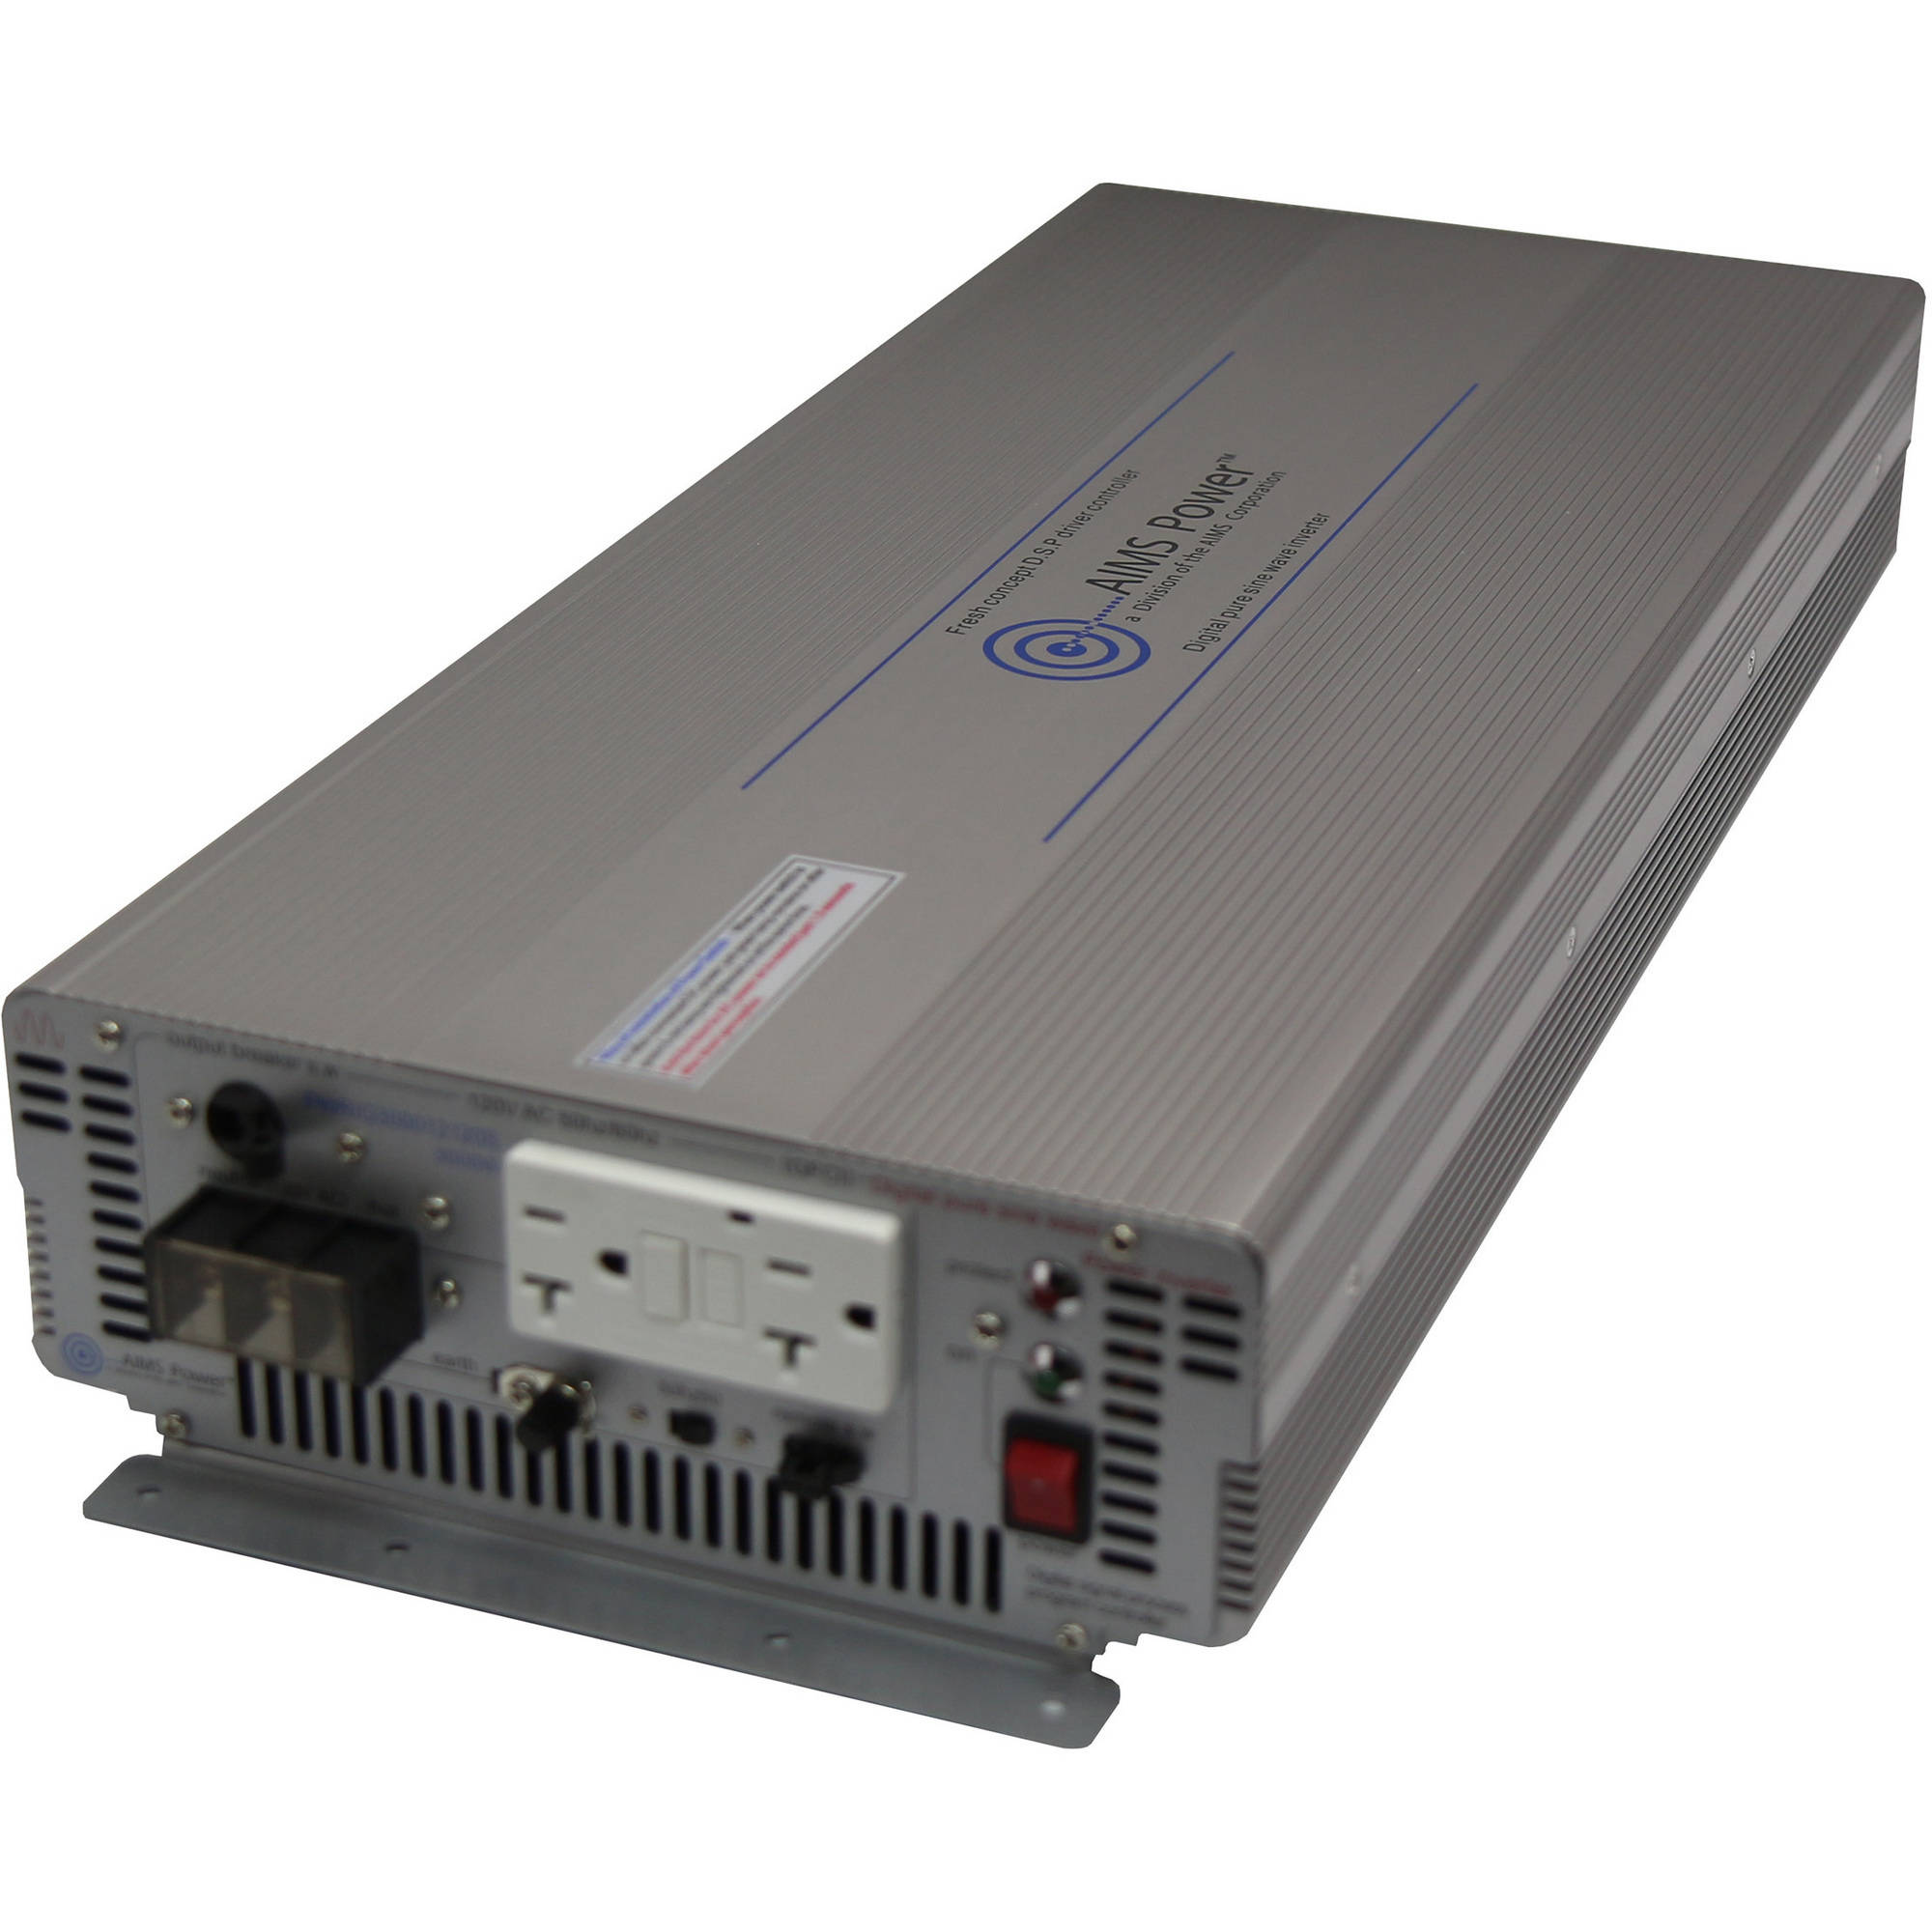 AIMS Power 3000 Watt 24 Volt Pure Sine Inverter with GFCI